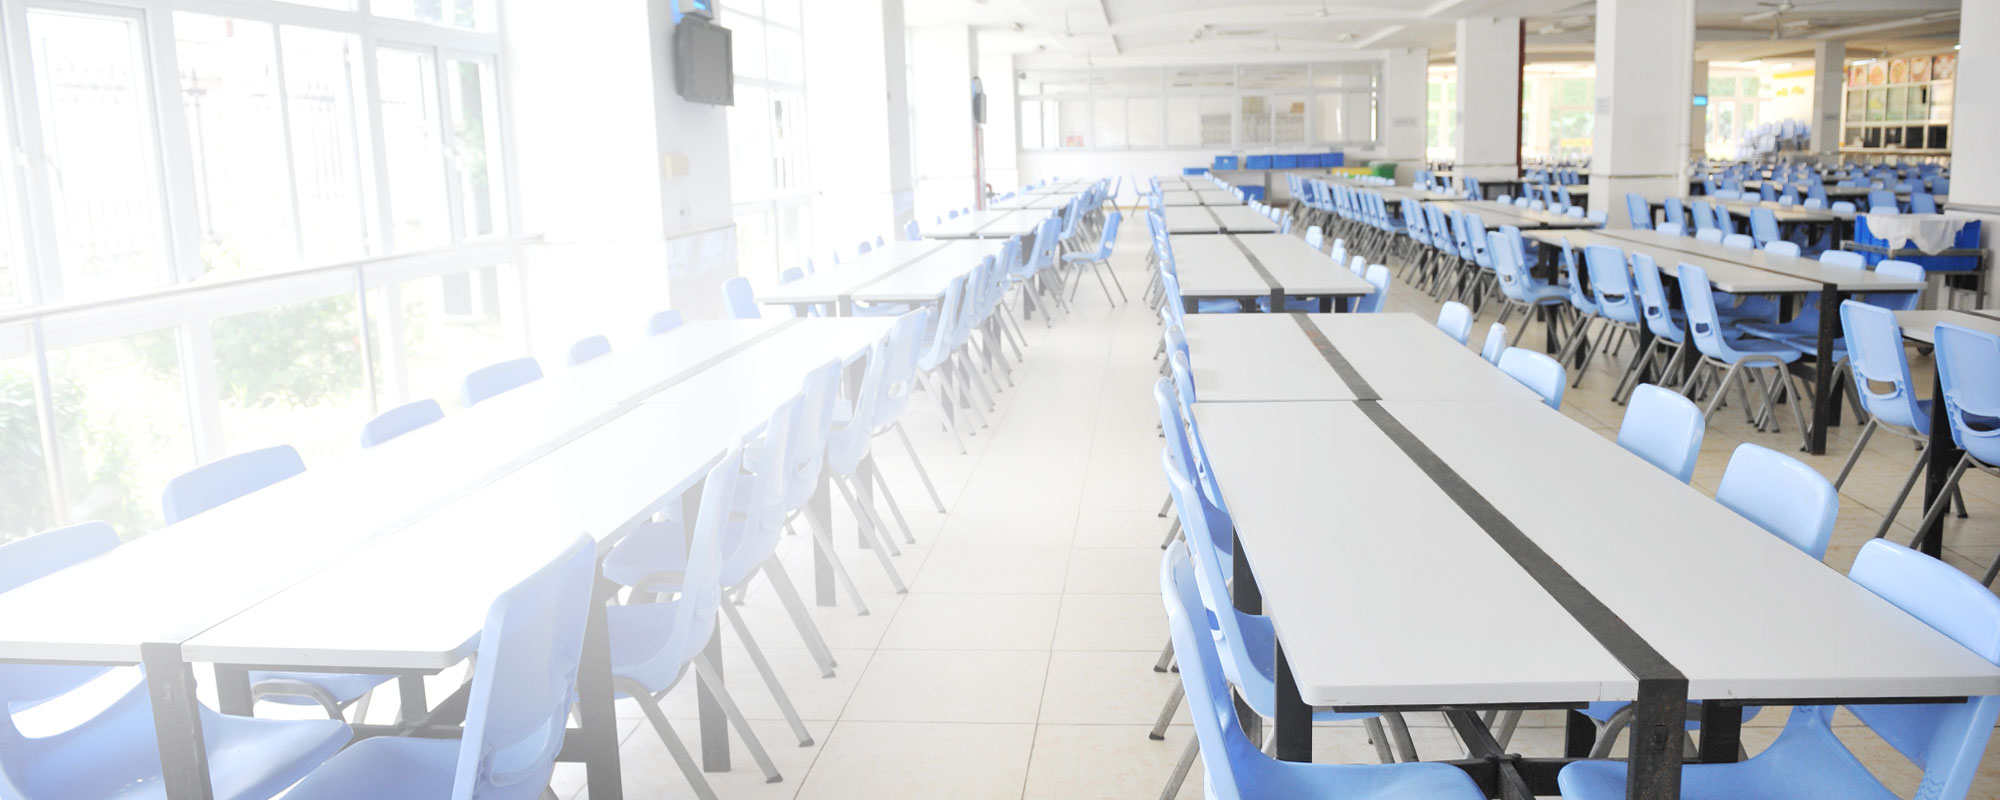 School cafeteria ready for lunch